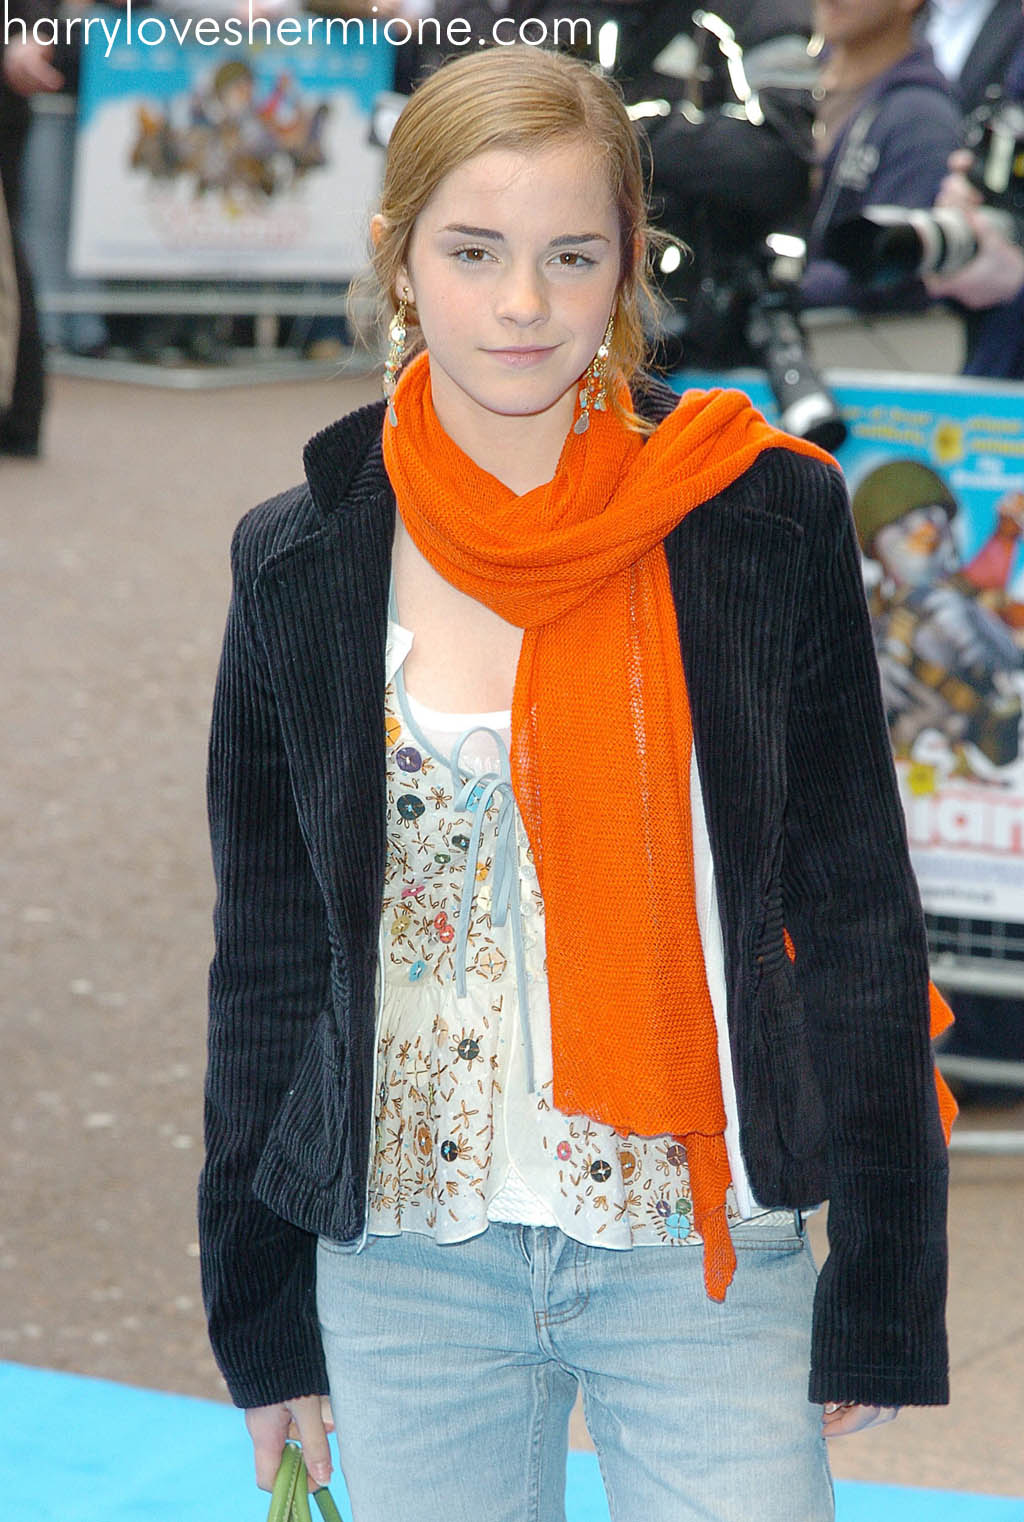 emma watson attending the premier valiant latest animation movie ...: http://www.harryloveshermione.com/images/appearances/valient/valient4.jpg.php